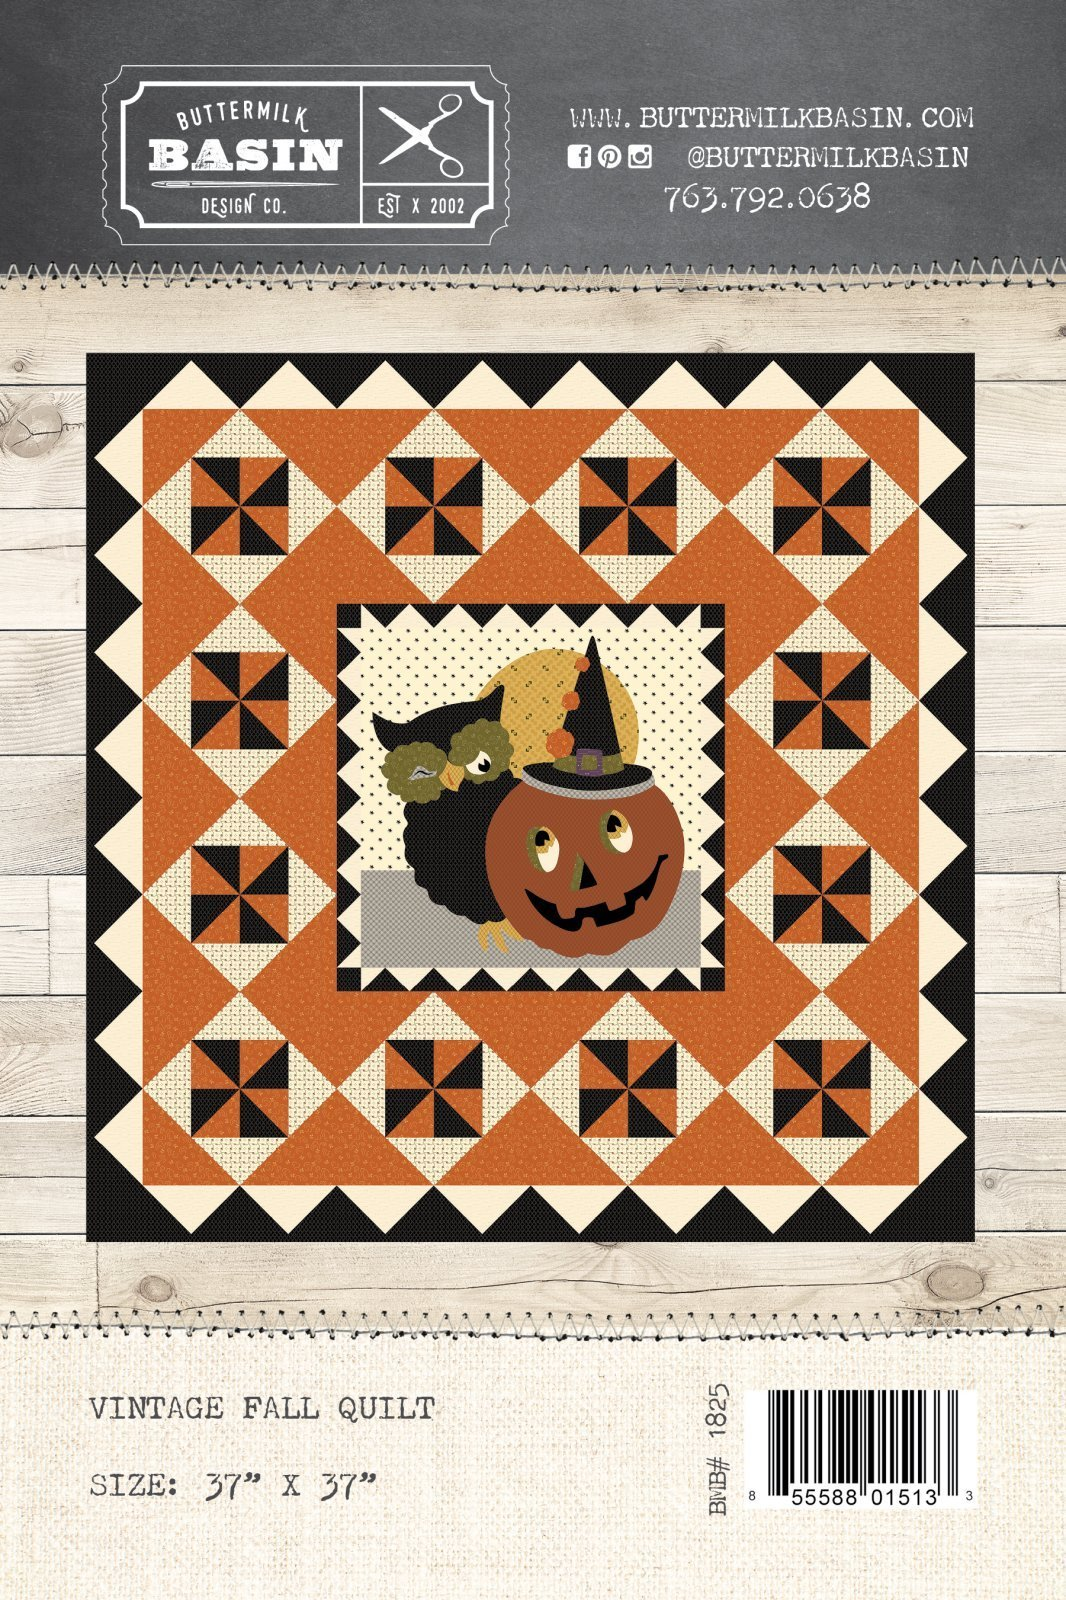 Vintage Fall Quilt Kit